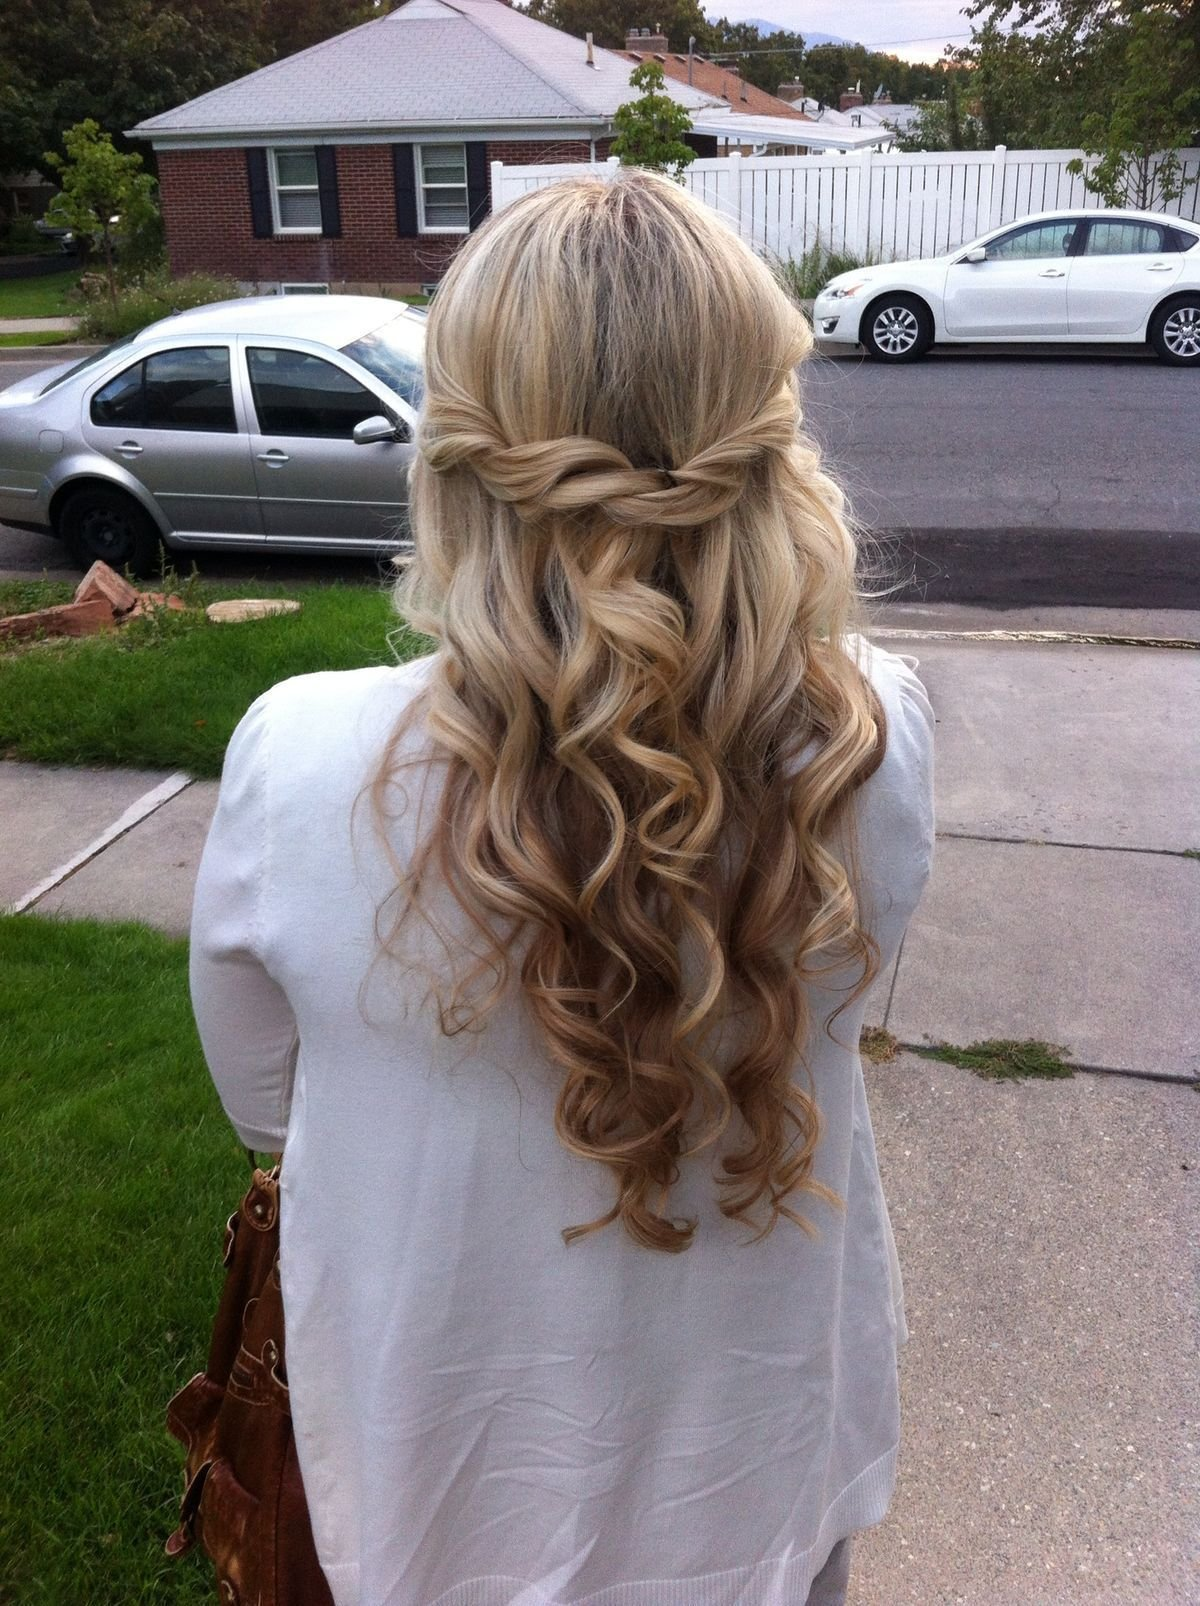 New Pin By Megan Millard On Diy Pinterest Hair Hair Ideas With Pictures